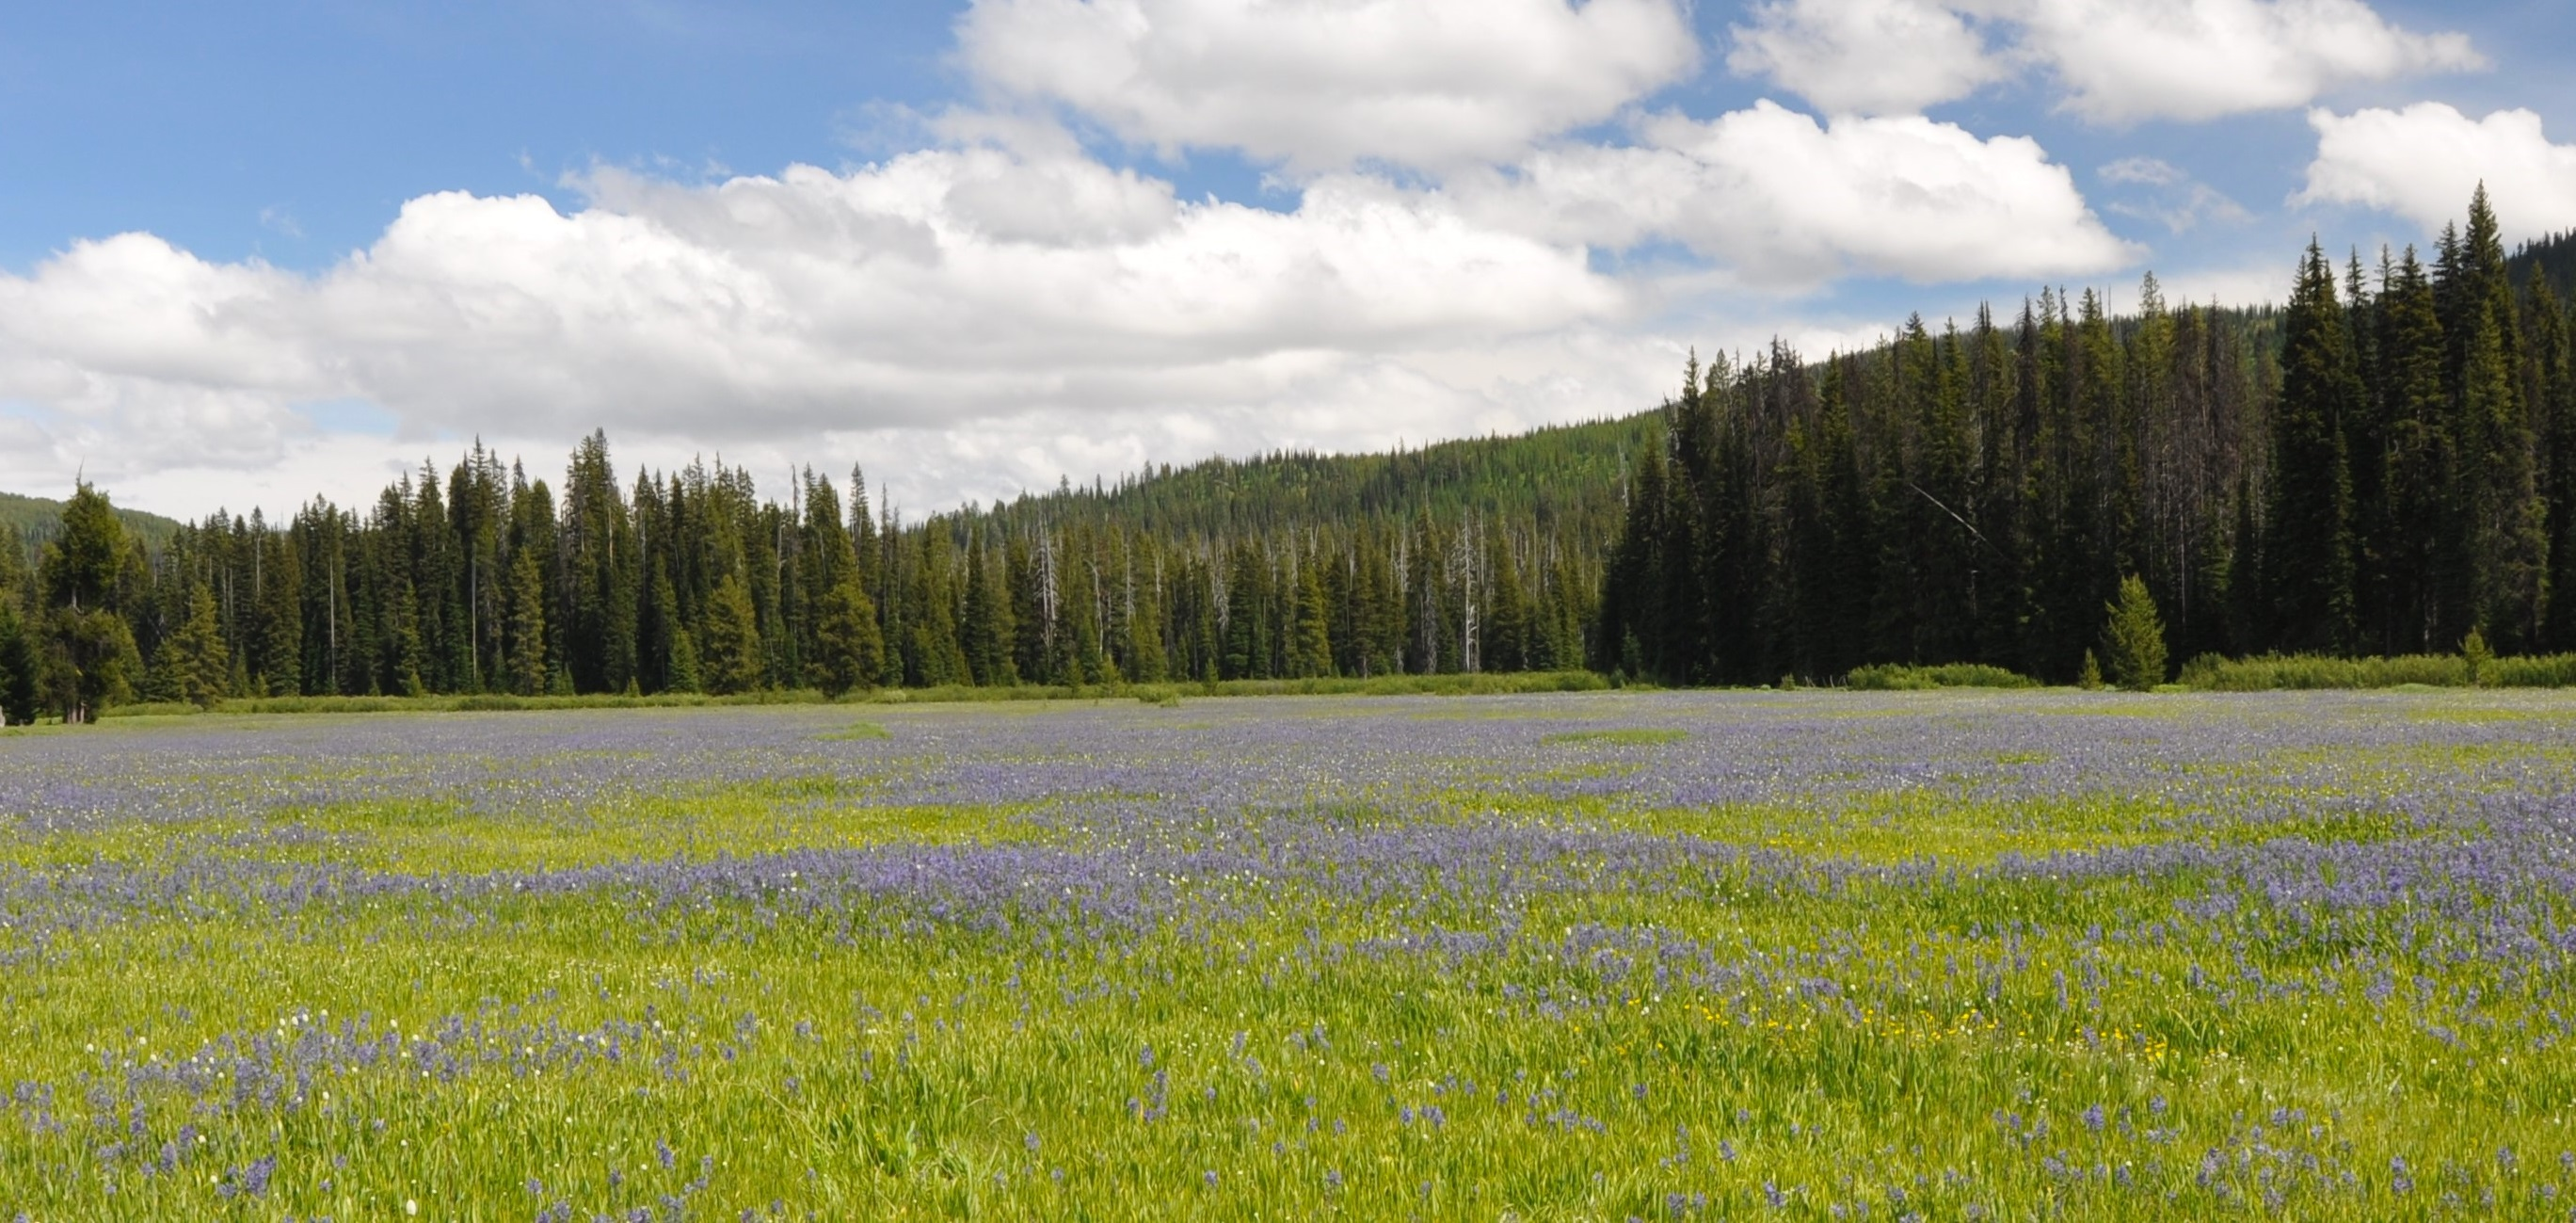 Camas bloom at Packer Meadows